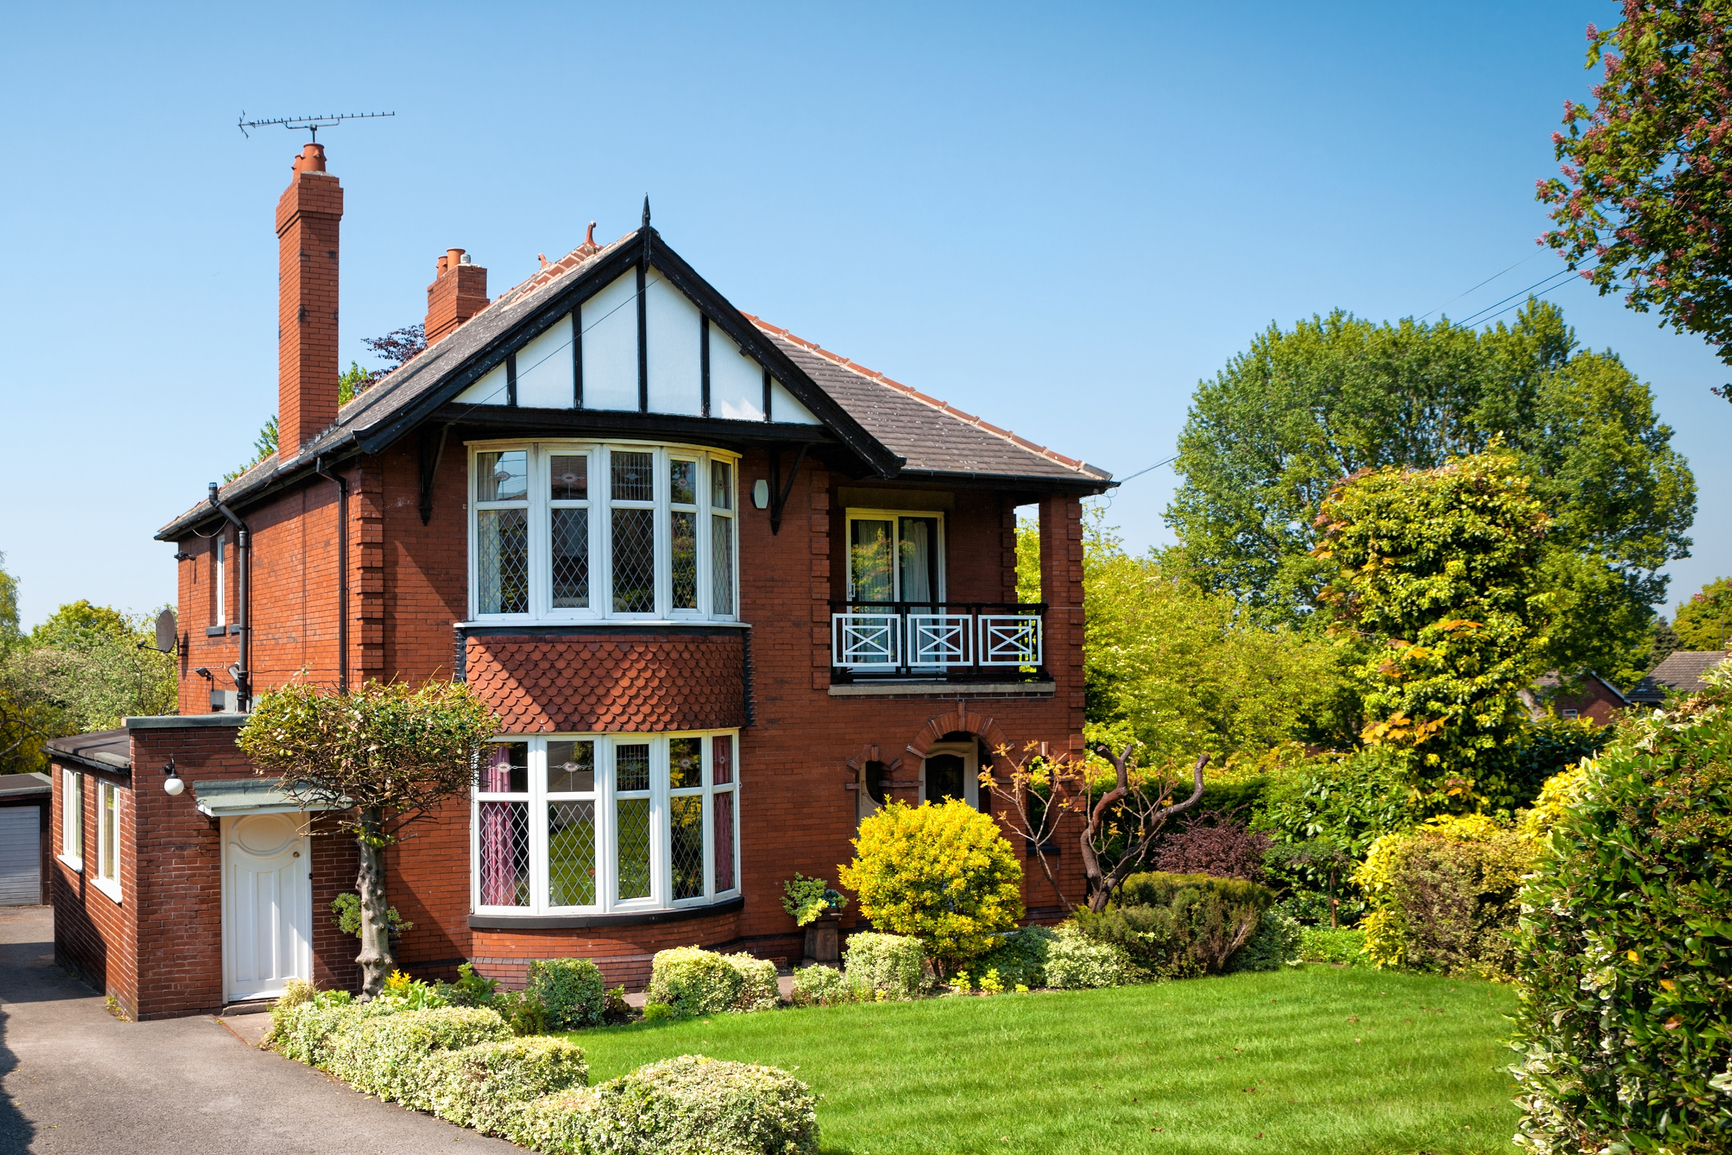 The Home Improvements That Will Impact on Your Insurance Premiums, for Good and for Bad